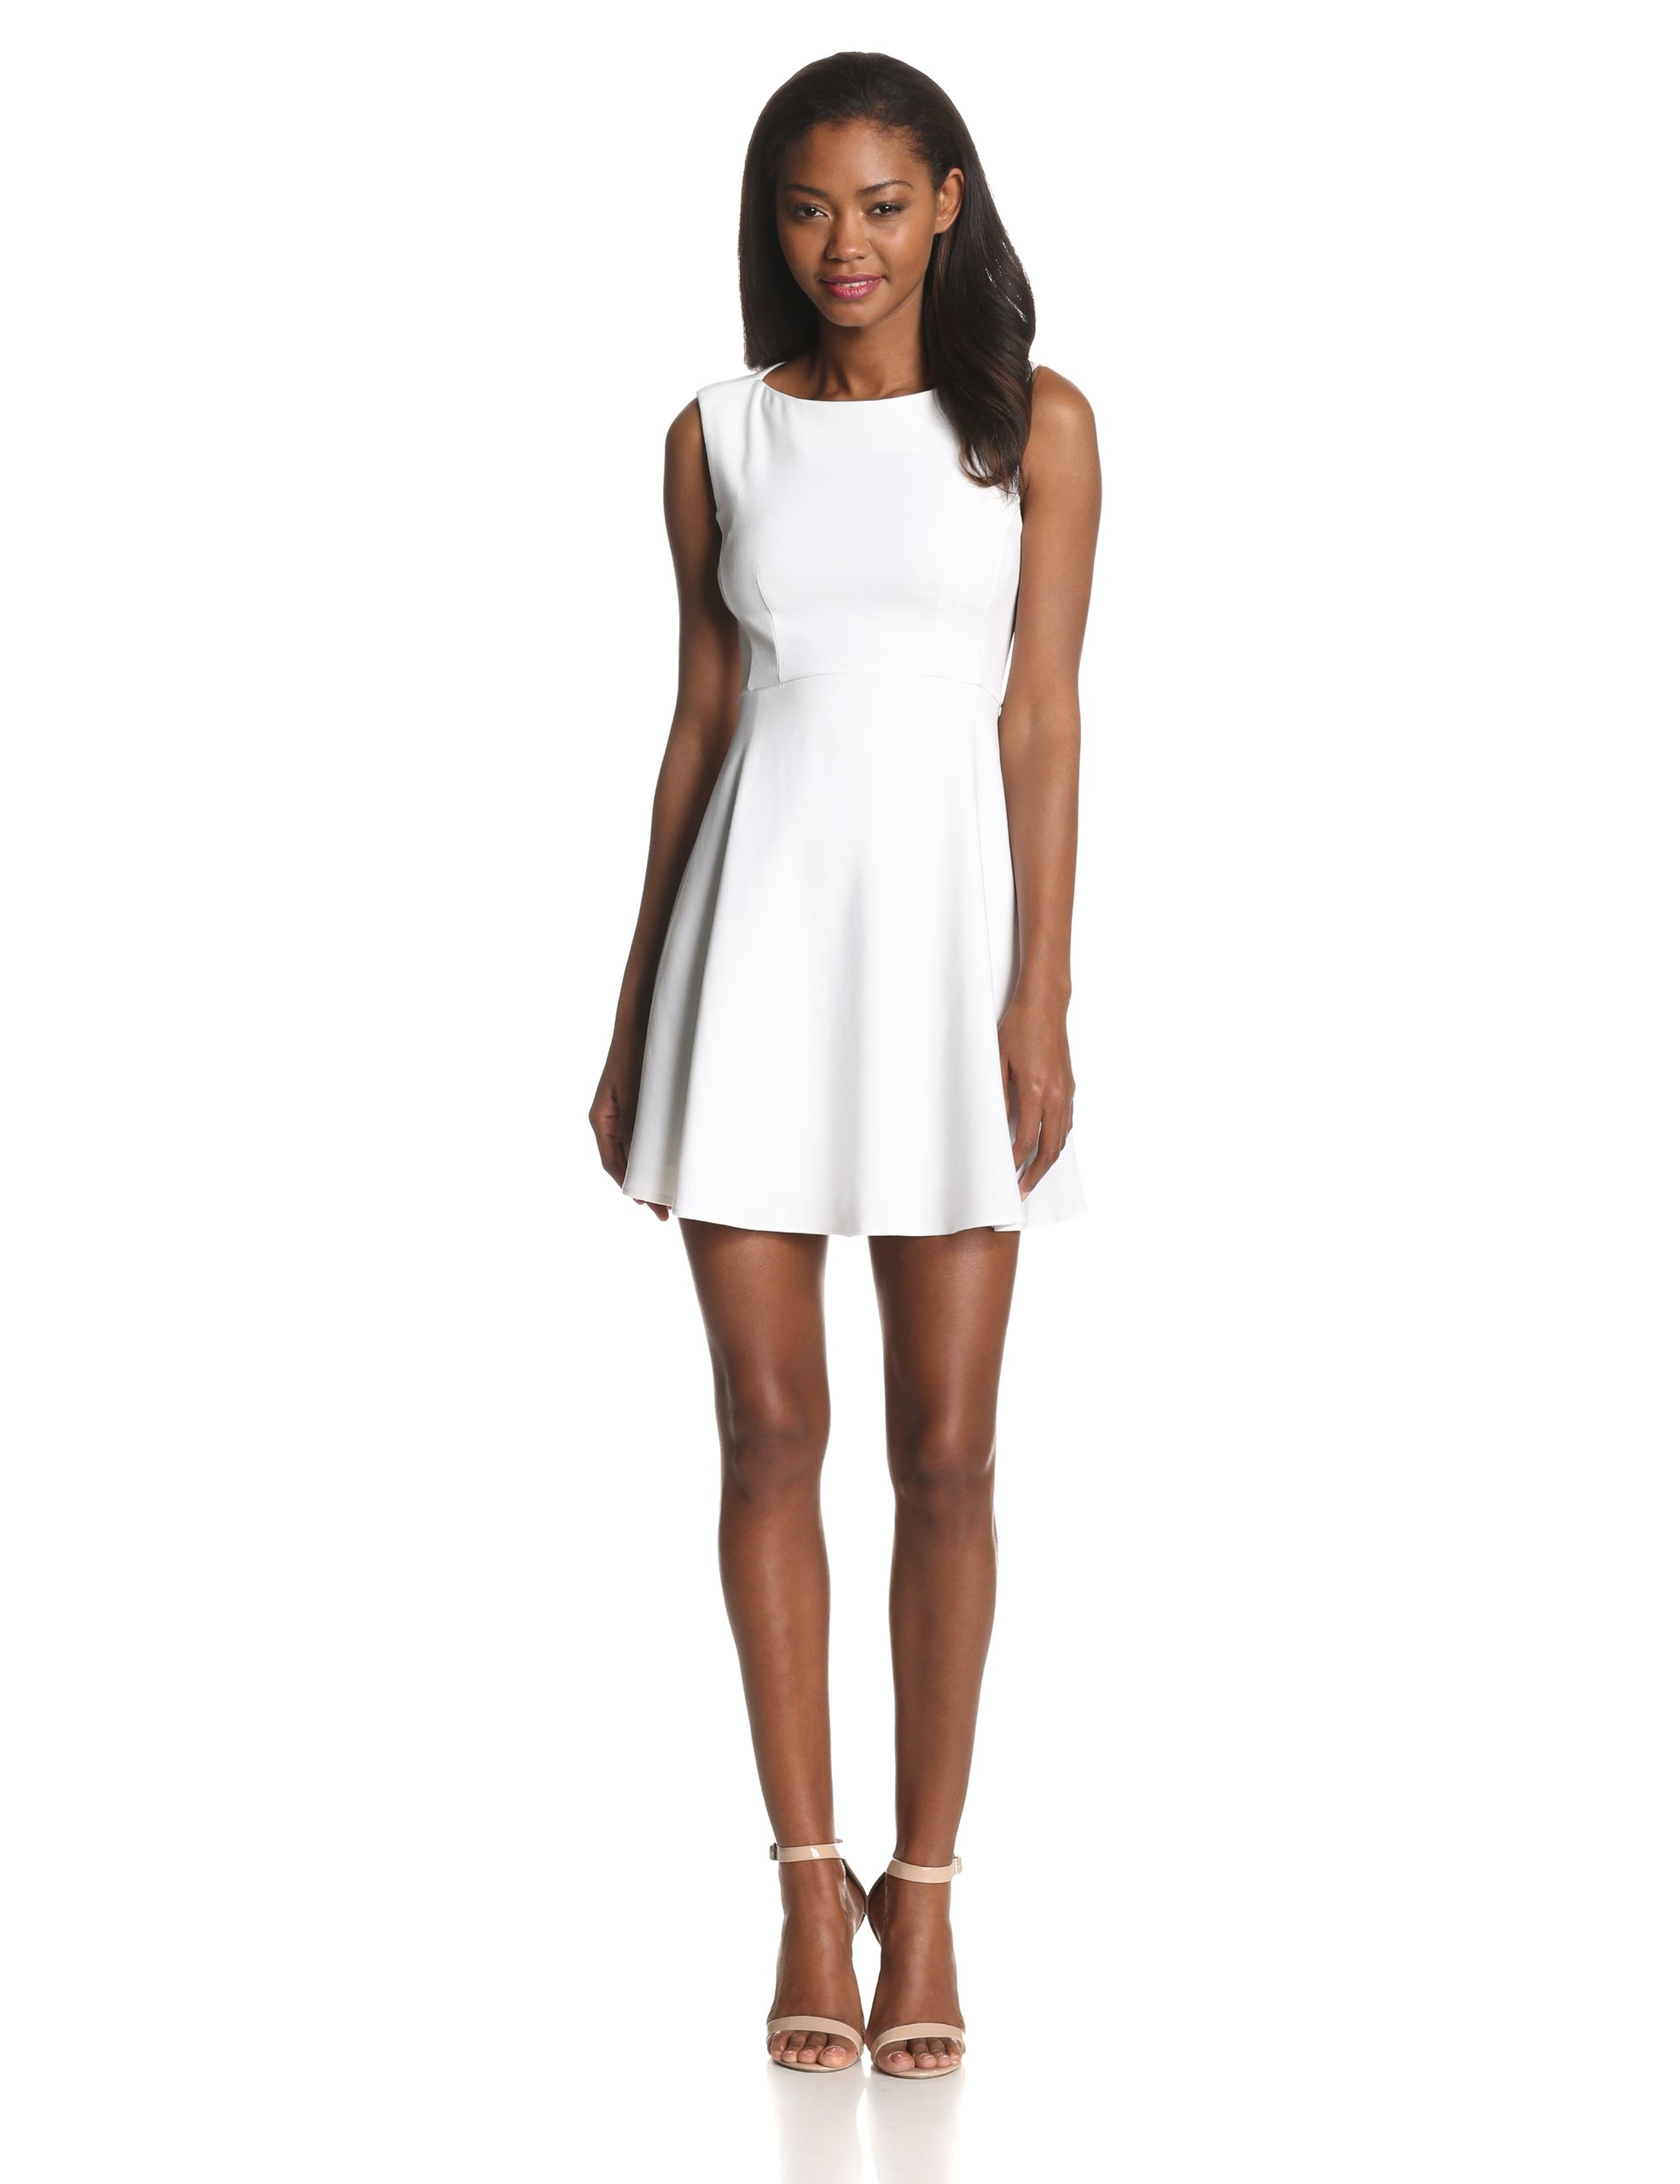 French Connection Women's Feather Ruth Classic Fit and Flare Dress, White, 6